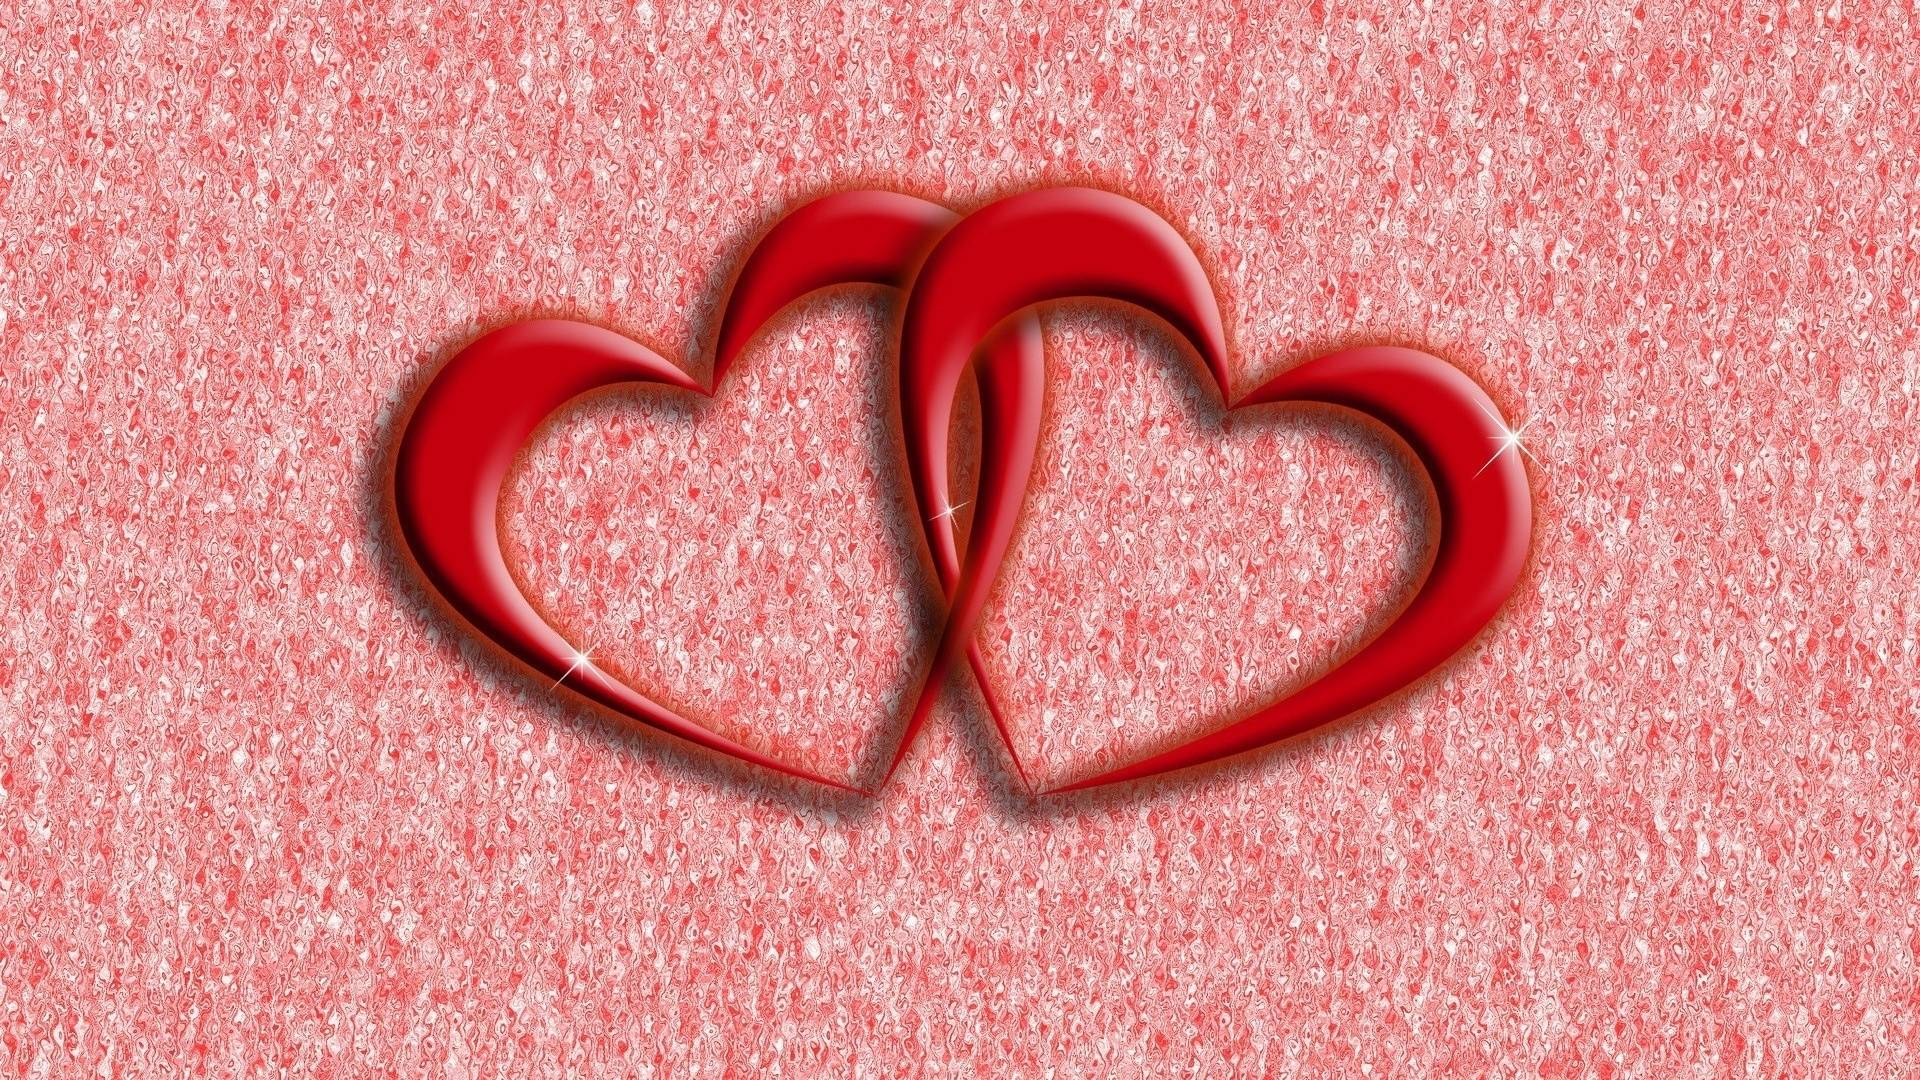 Love Heart Full Hd Wallpaper : Red Heart Backgrounds - Wallpaper cave